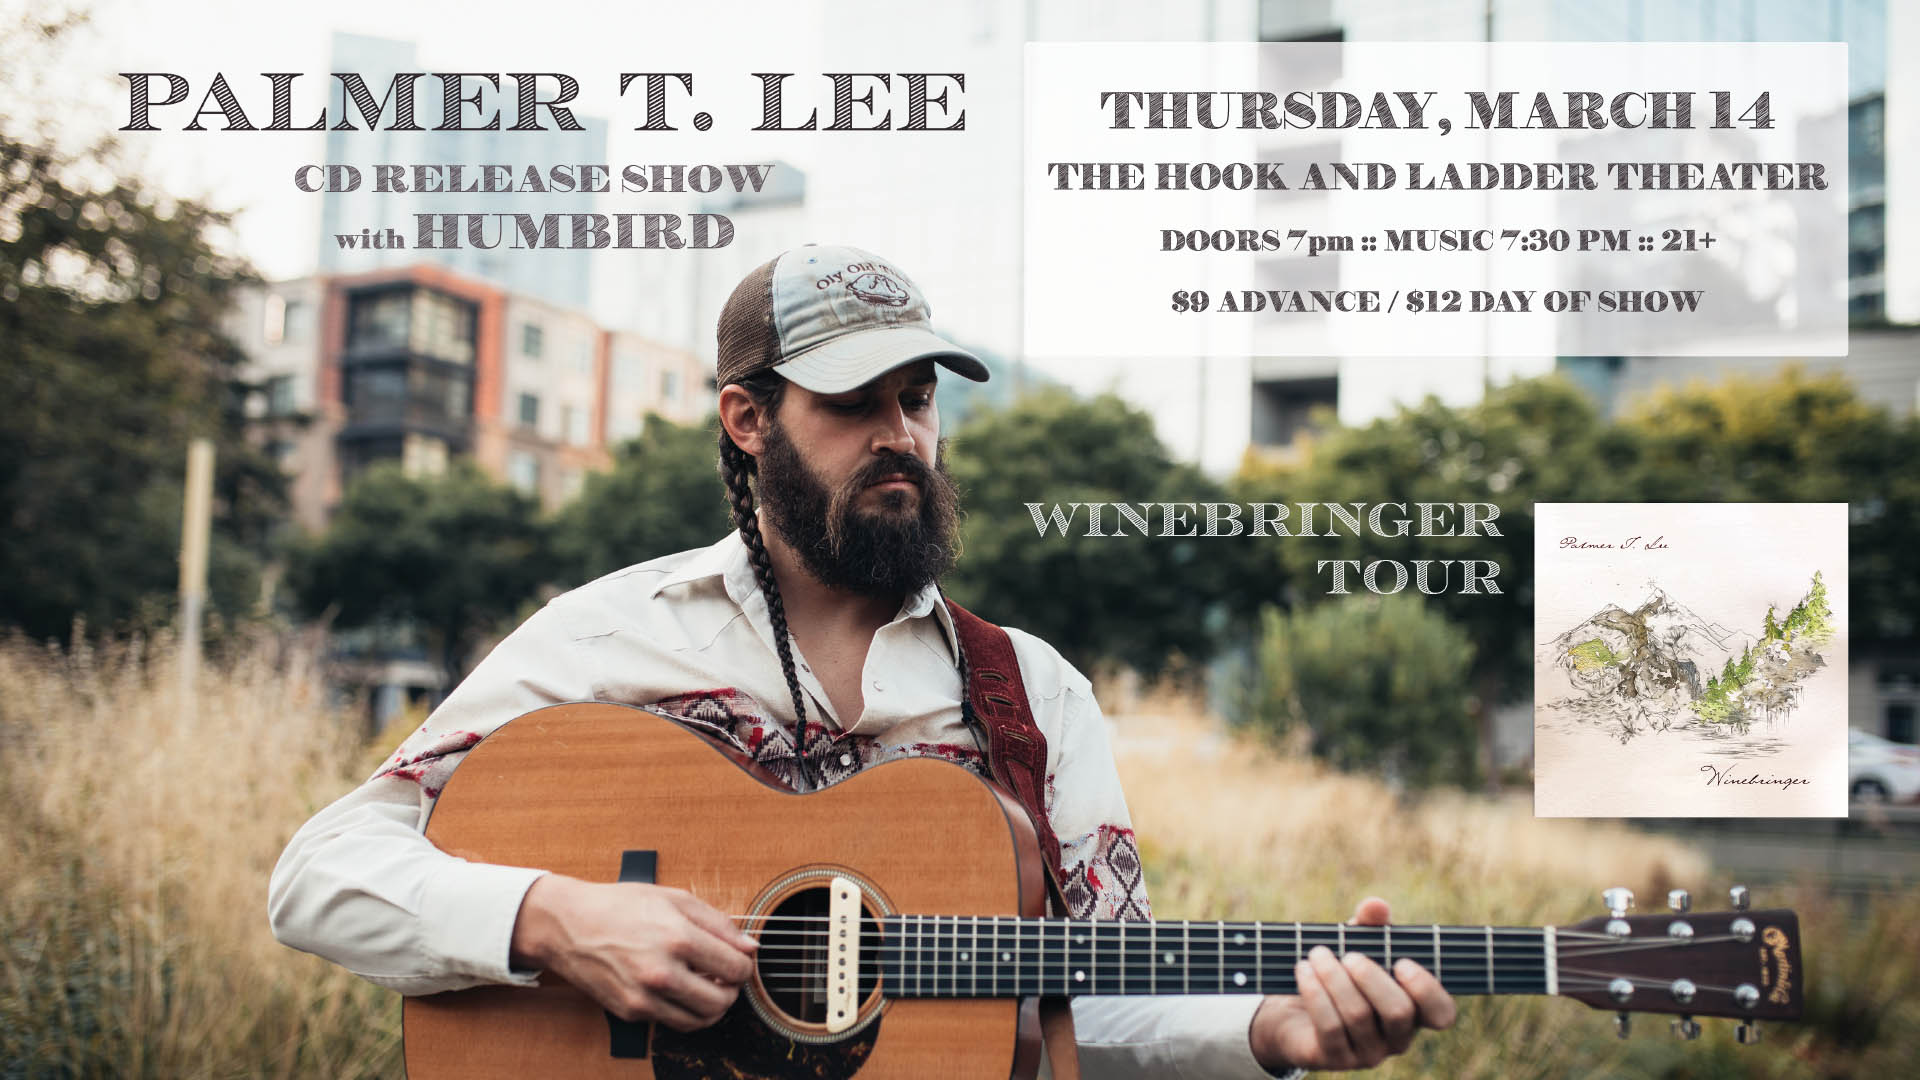 Palmer T. Lee - CD Release Show with special guest Humbird